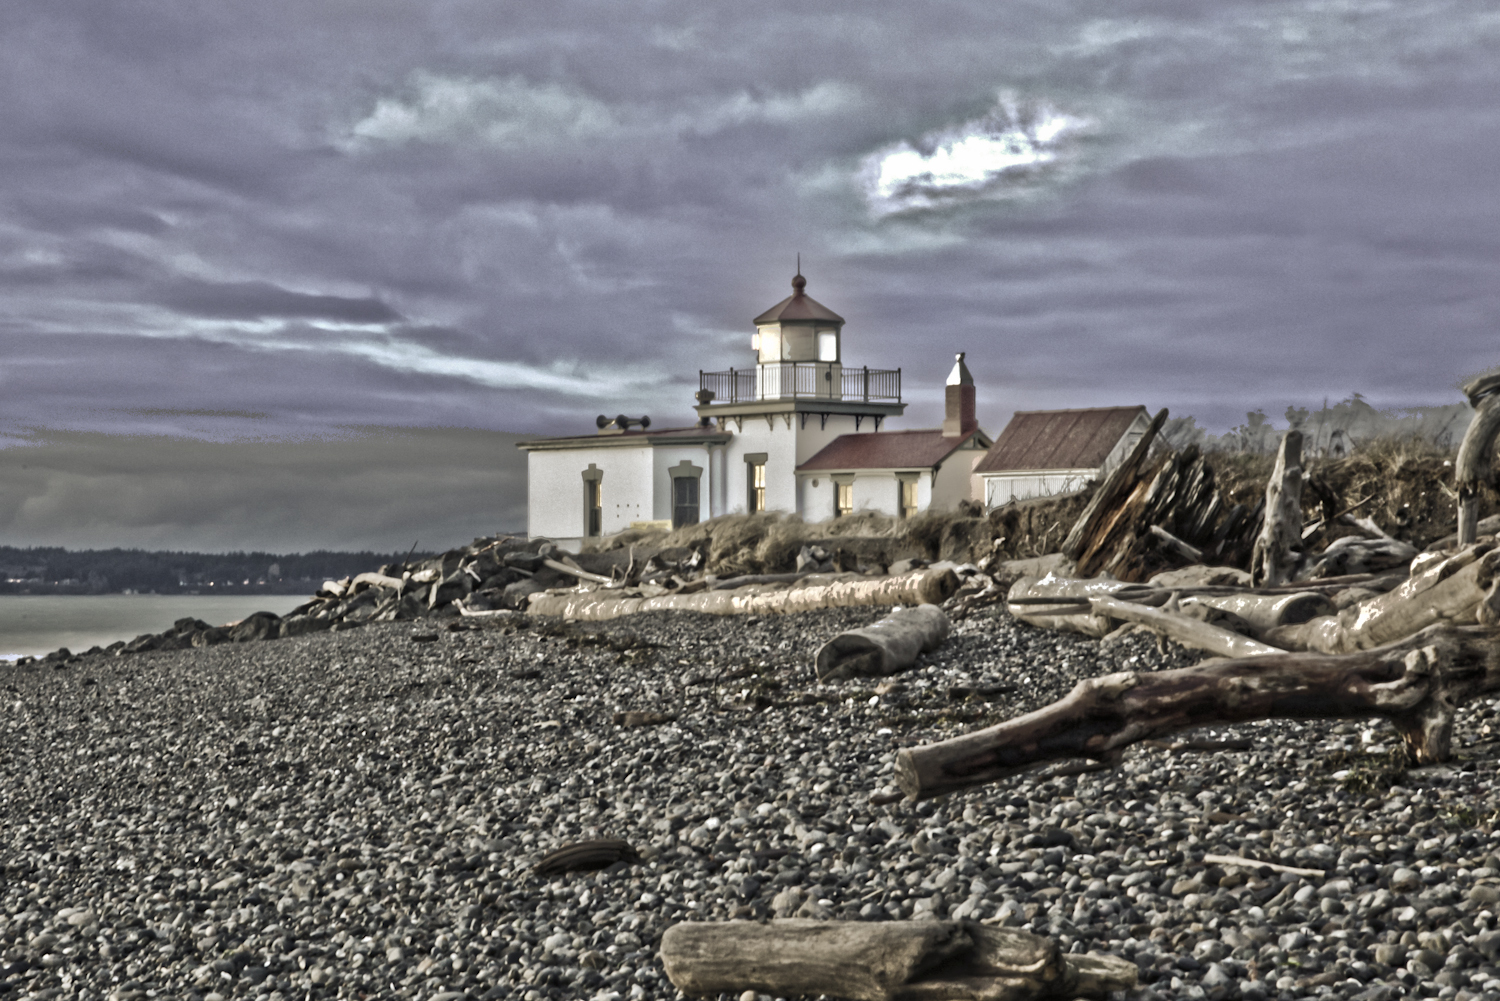 Discovery park HDR 2 copy.jpg